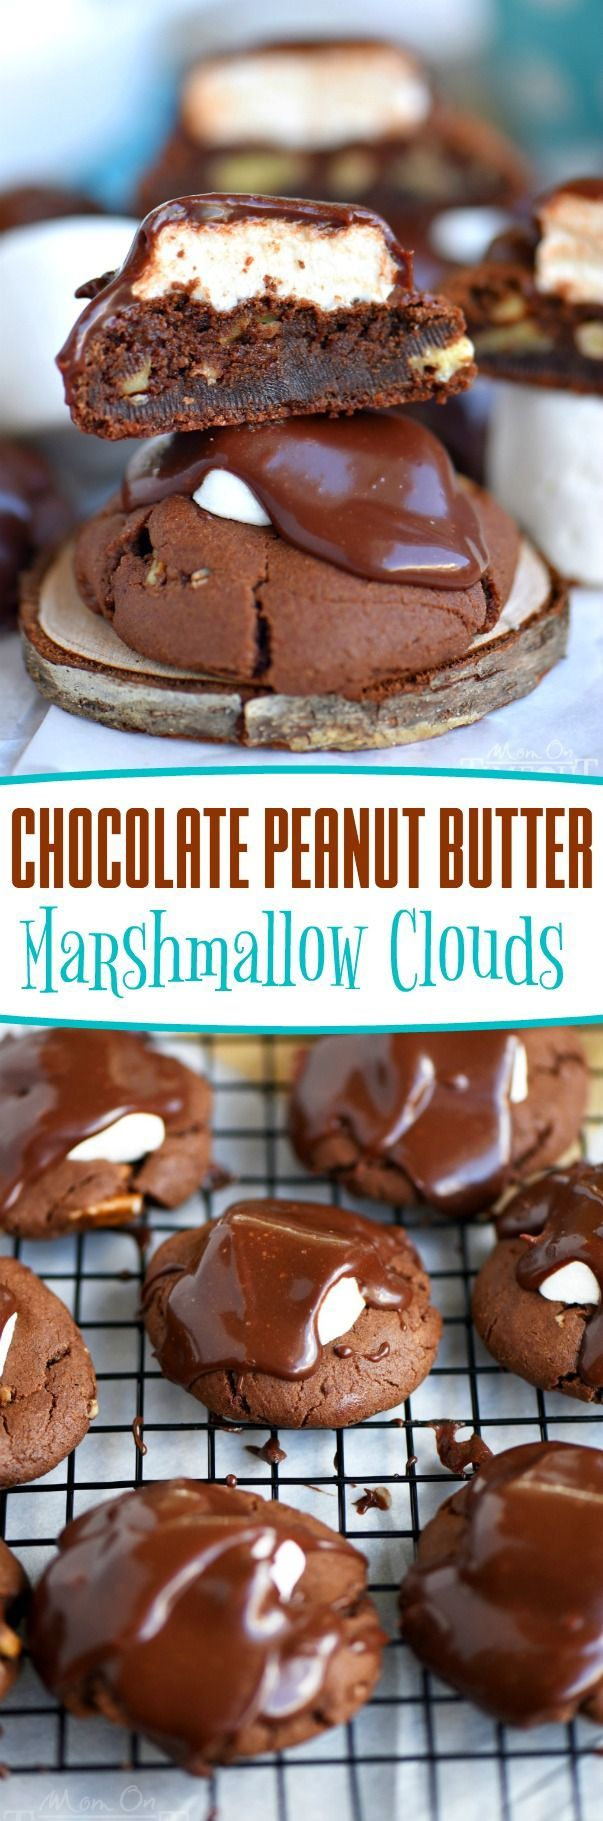 Today is the perfect day to indulge in these Chocolate Peanut Butter Marshmallow Clouds! The most incredible chocolate cookies you've ever had topped with a marshmallow cloud and decadent chocolate frosting! It's impossible to say no to these glorious treats! // Mom On Timeout